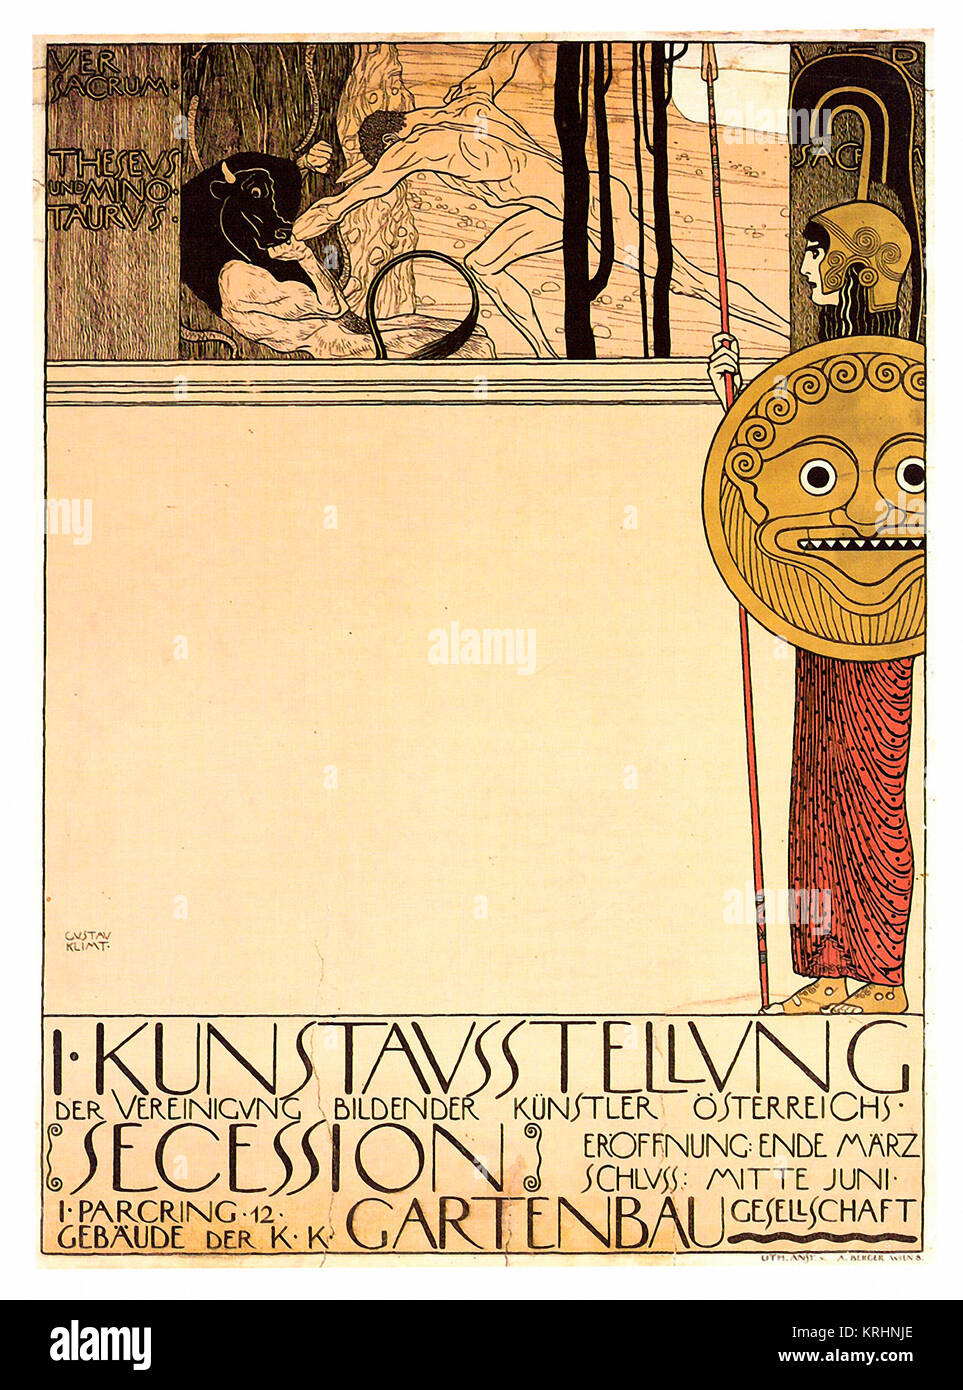 Vienna Secession, First Exhibition, poster - Stock Image